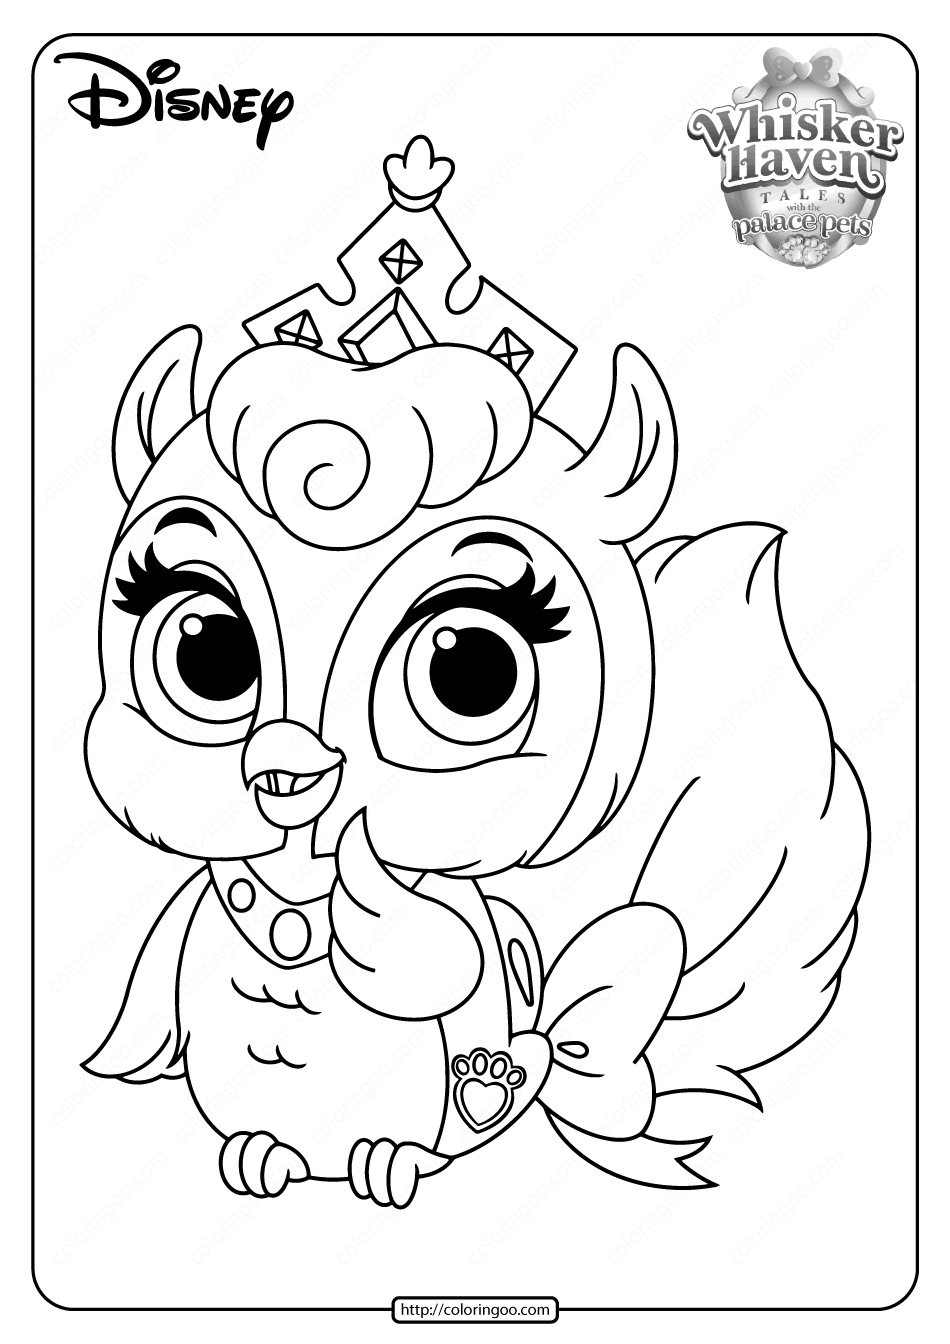 Printable Palace Pets Fern Pdf Coloring Pages In 2020 Puppy Coloring Pages Animal Coloring Pages Palace Pets